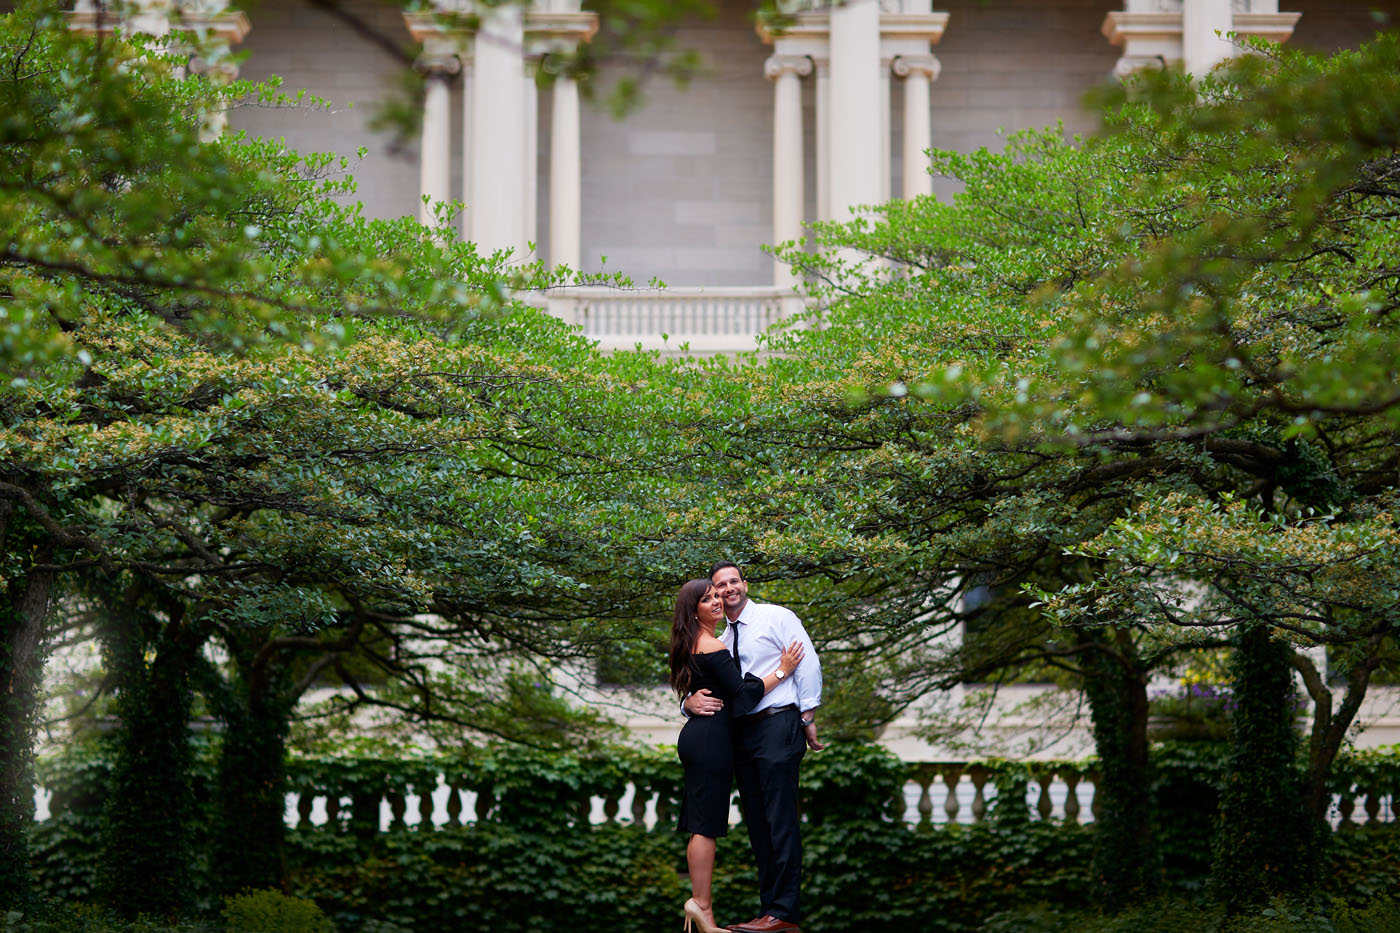 Cathy-Brian-Engagement-Session-11